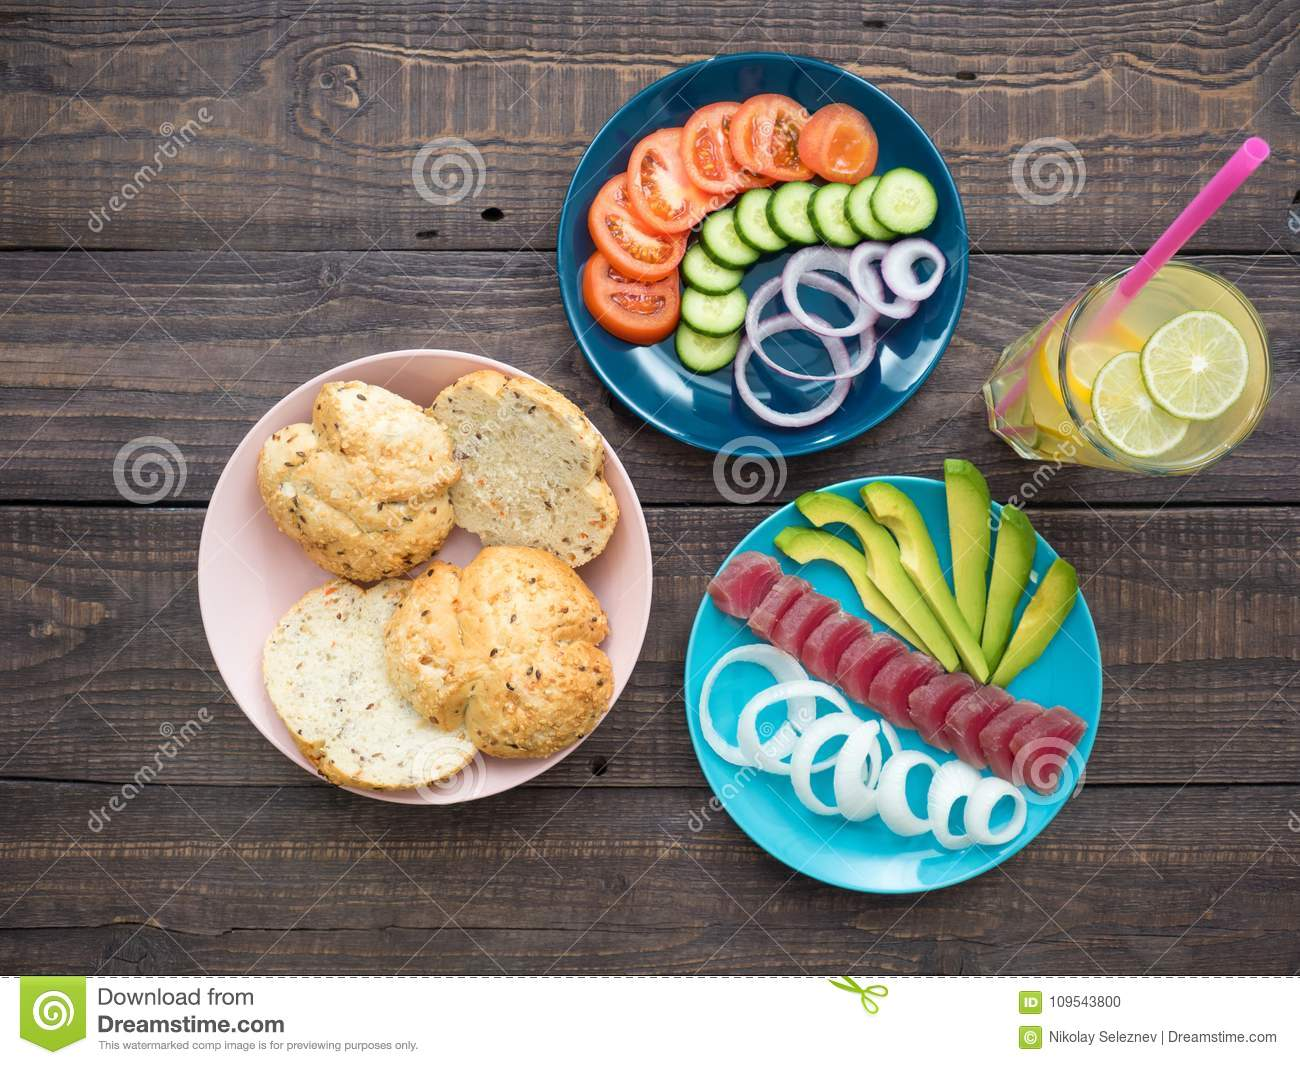 Sandwich with tuna on a plate, vegetables and a glass of lemonade